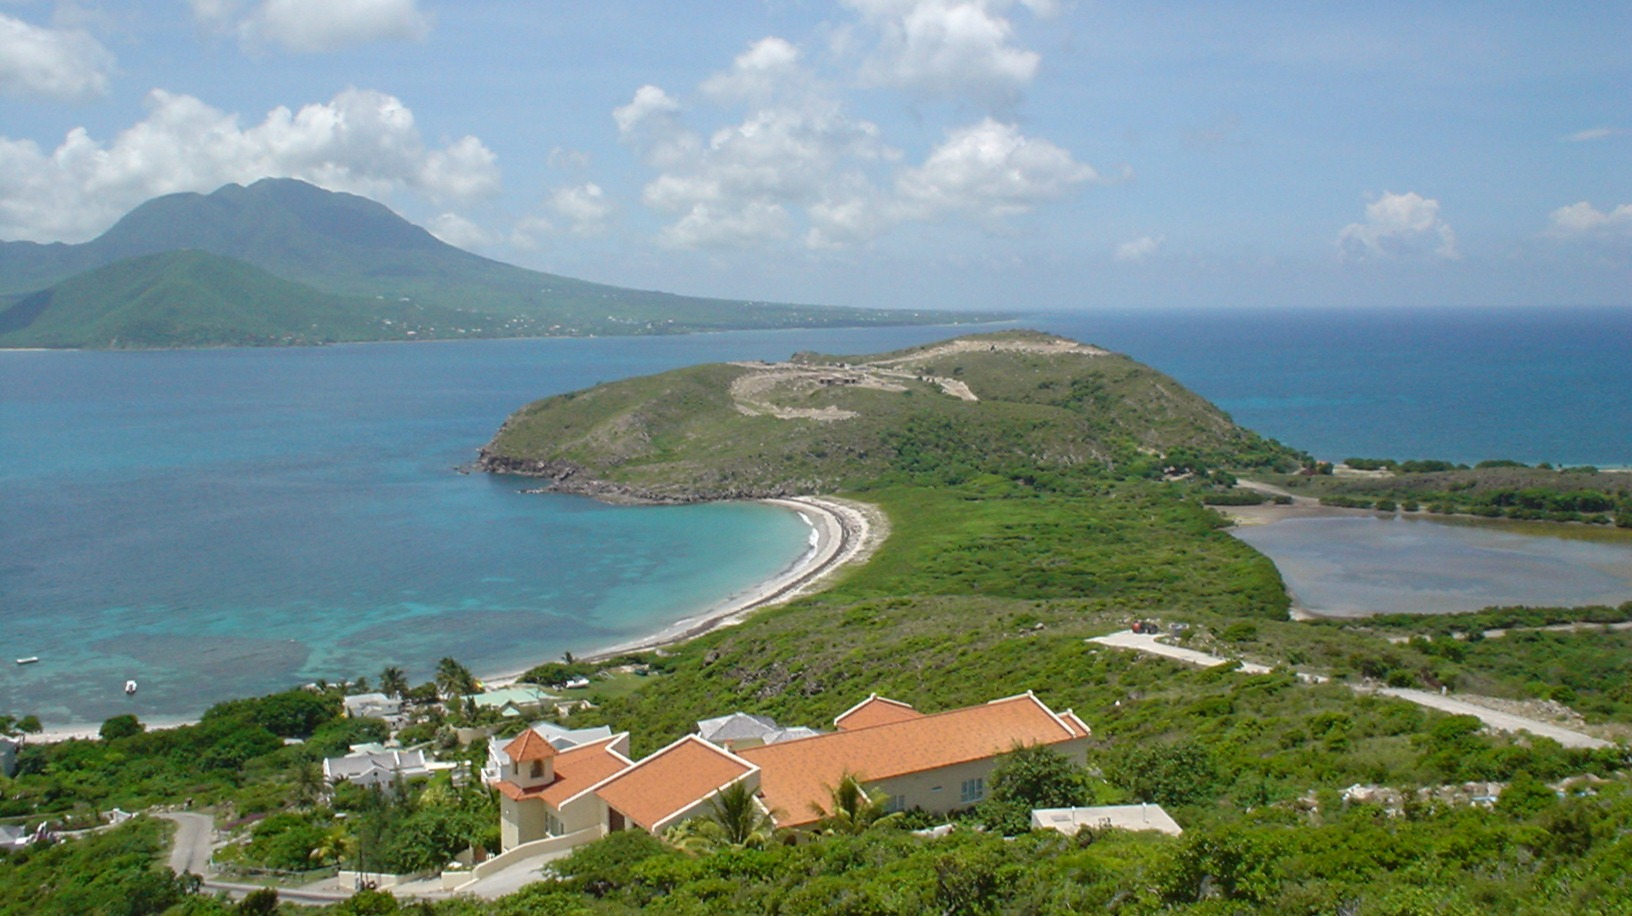 Scenic view of St. Kitts and Nevis